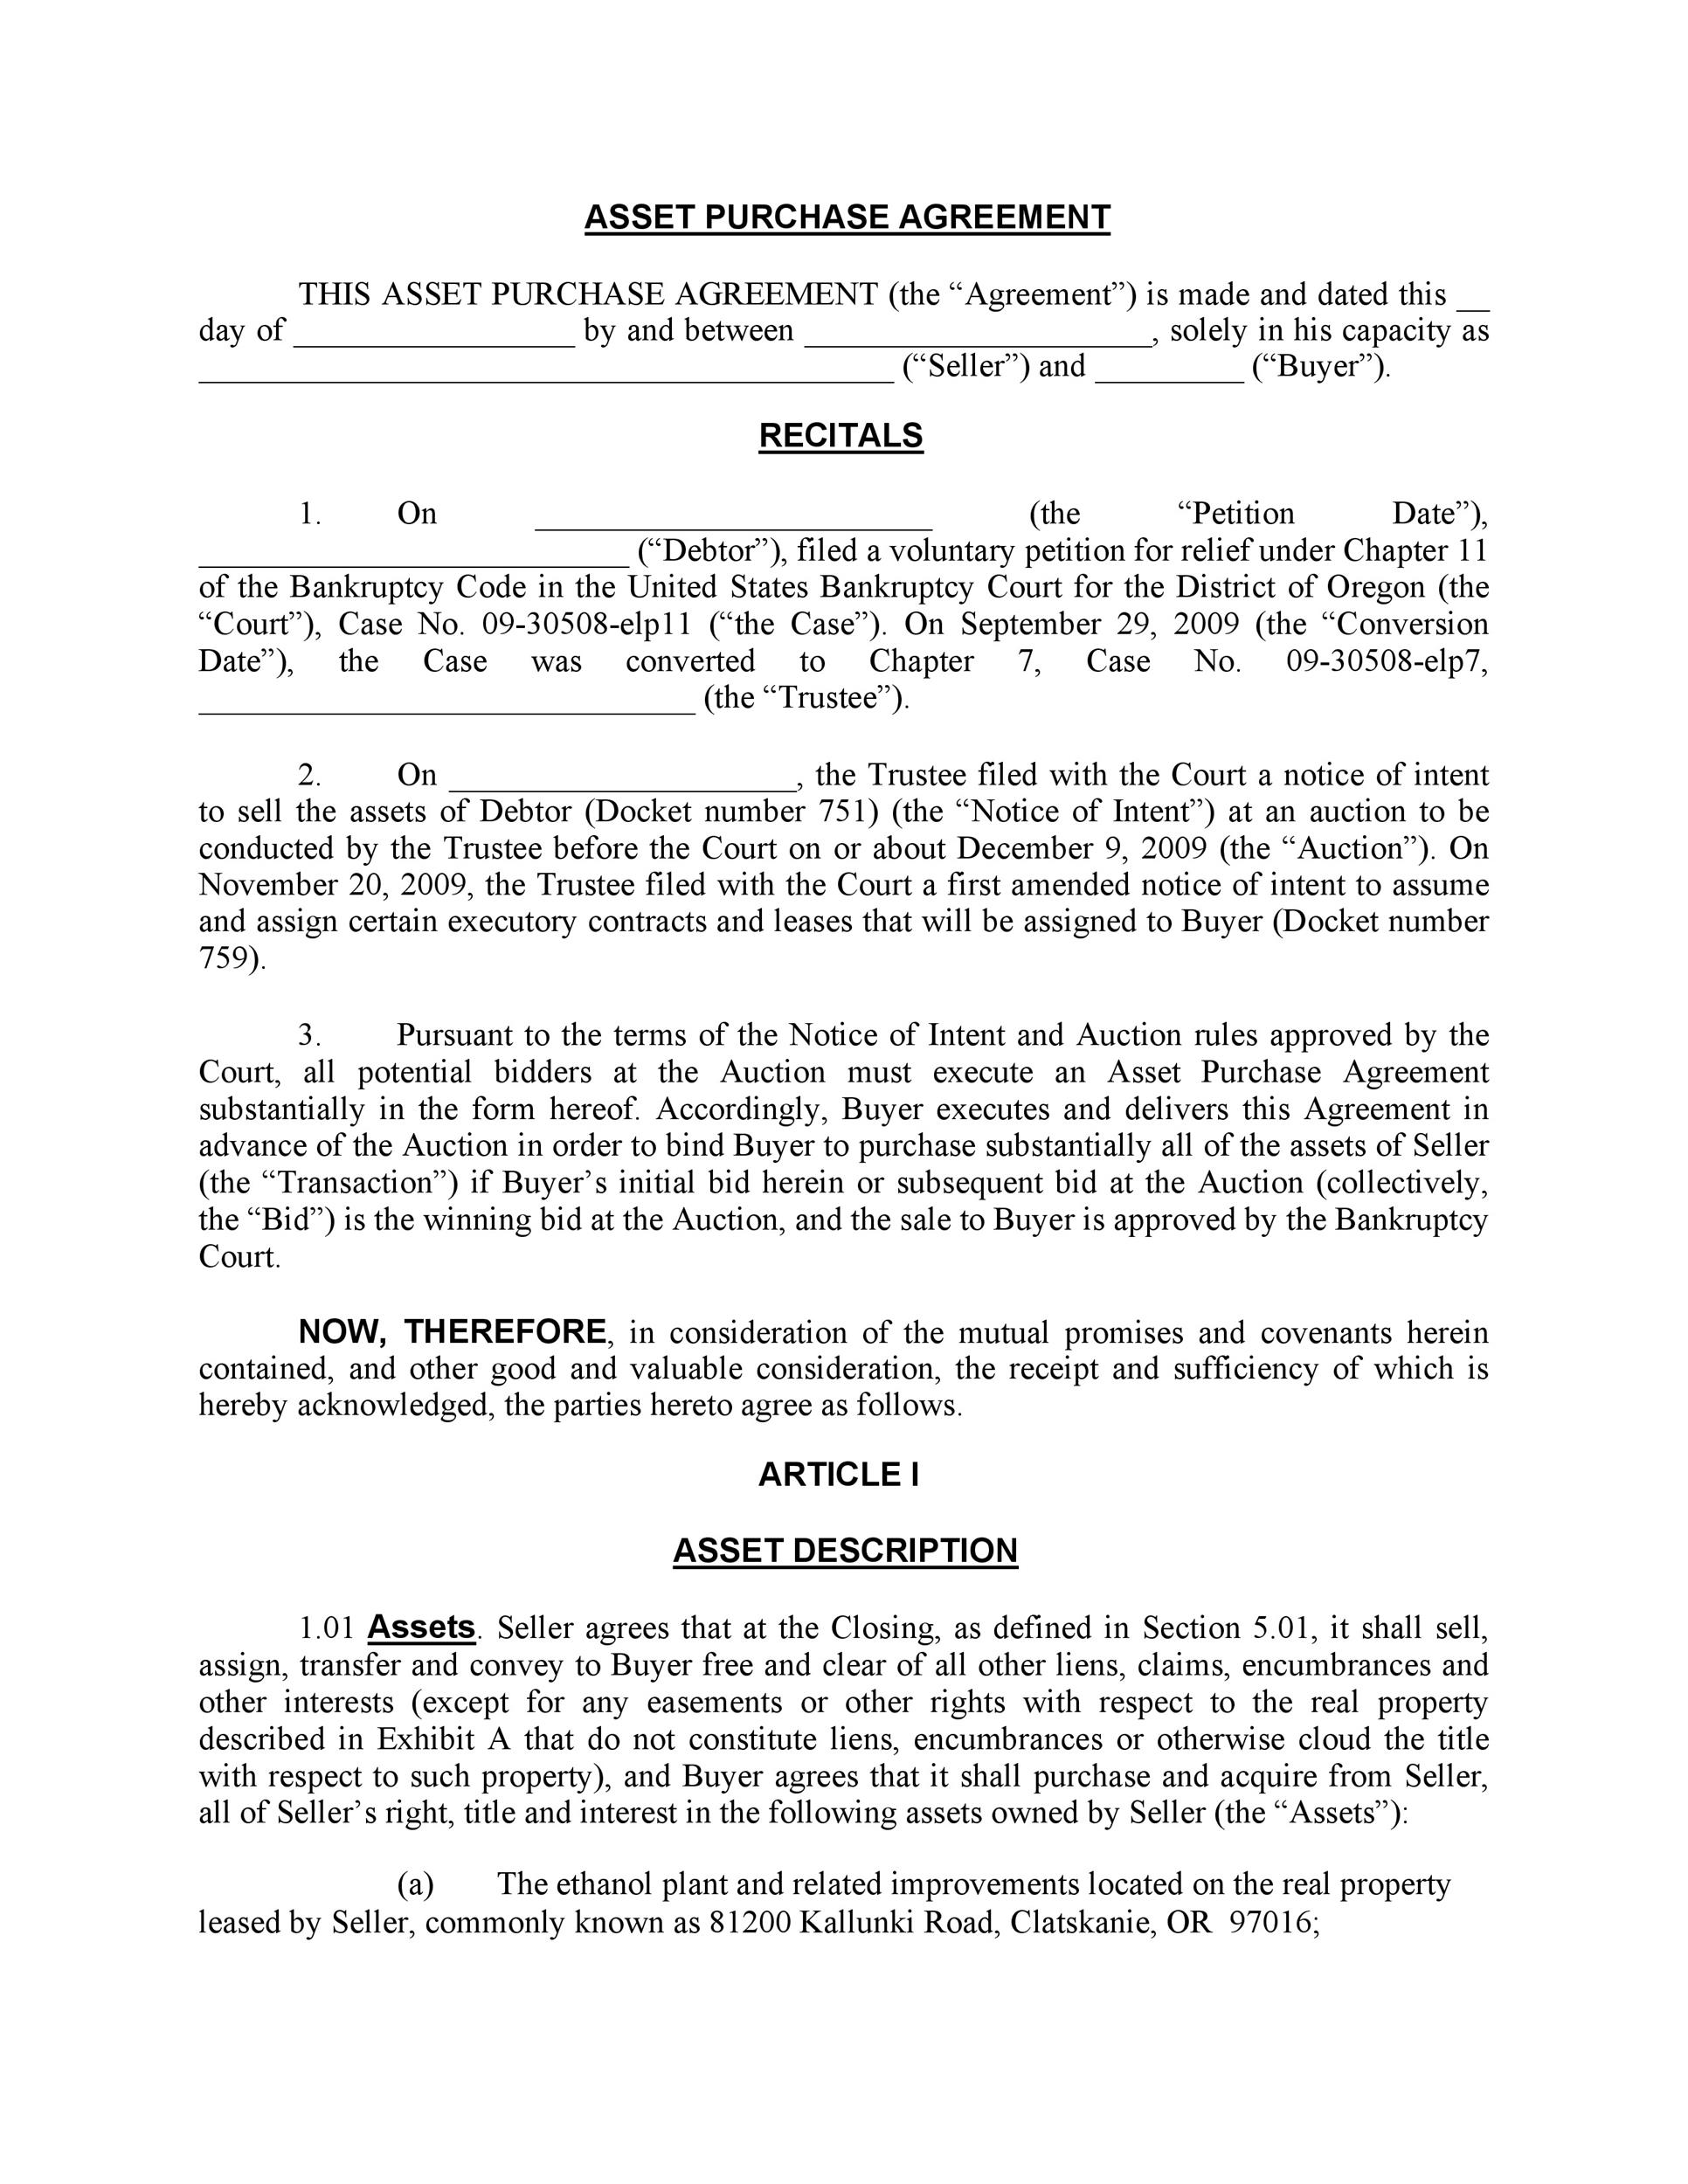 37 Simple Purchase Agreement Templates Real Estate, Business - asset purchase agreement template